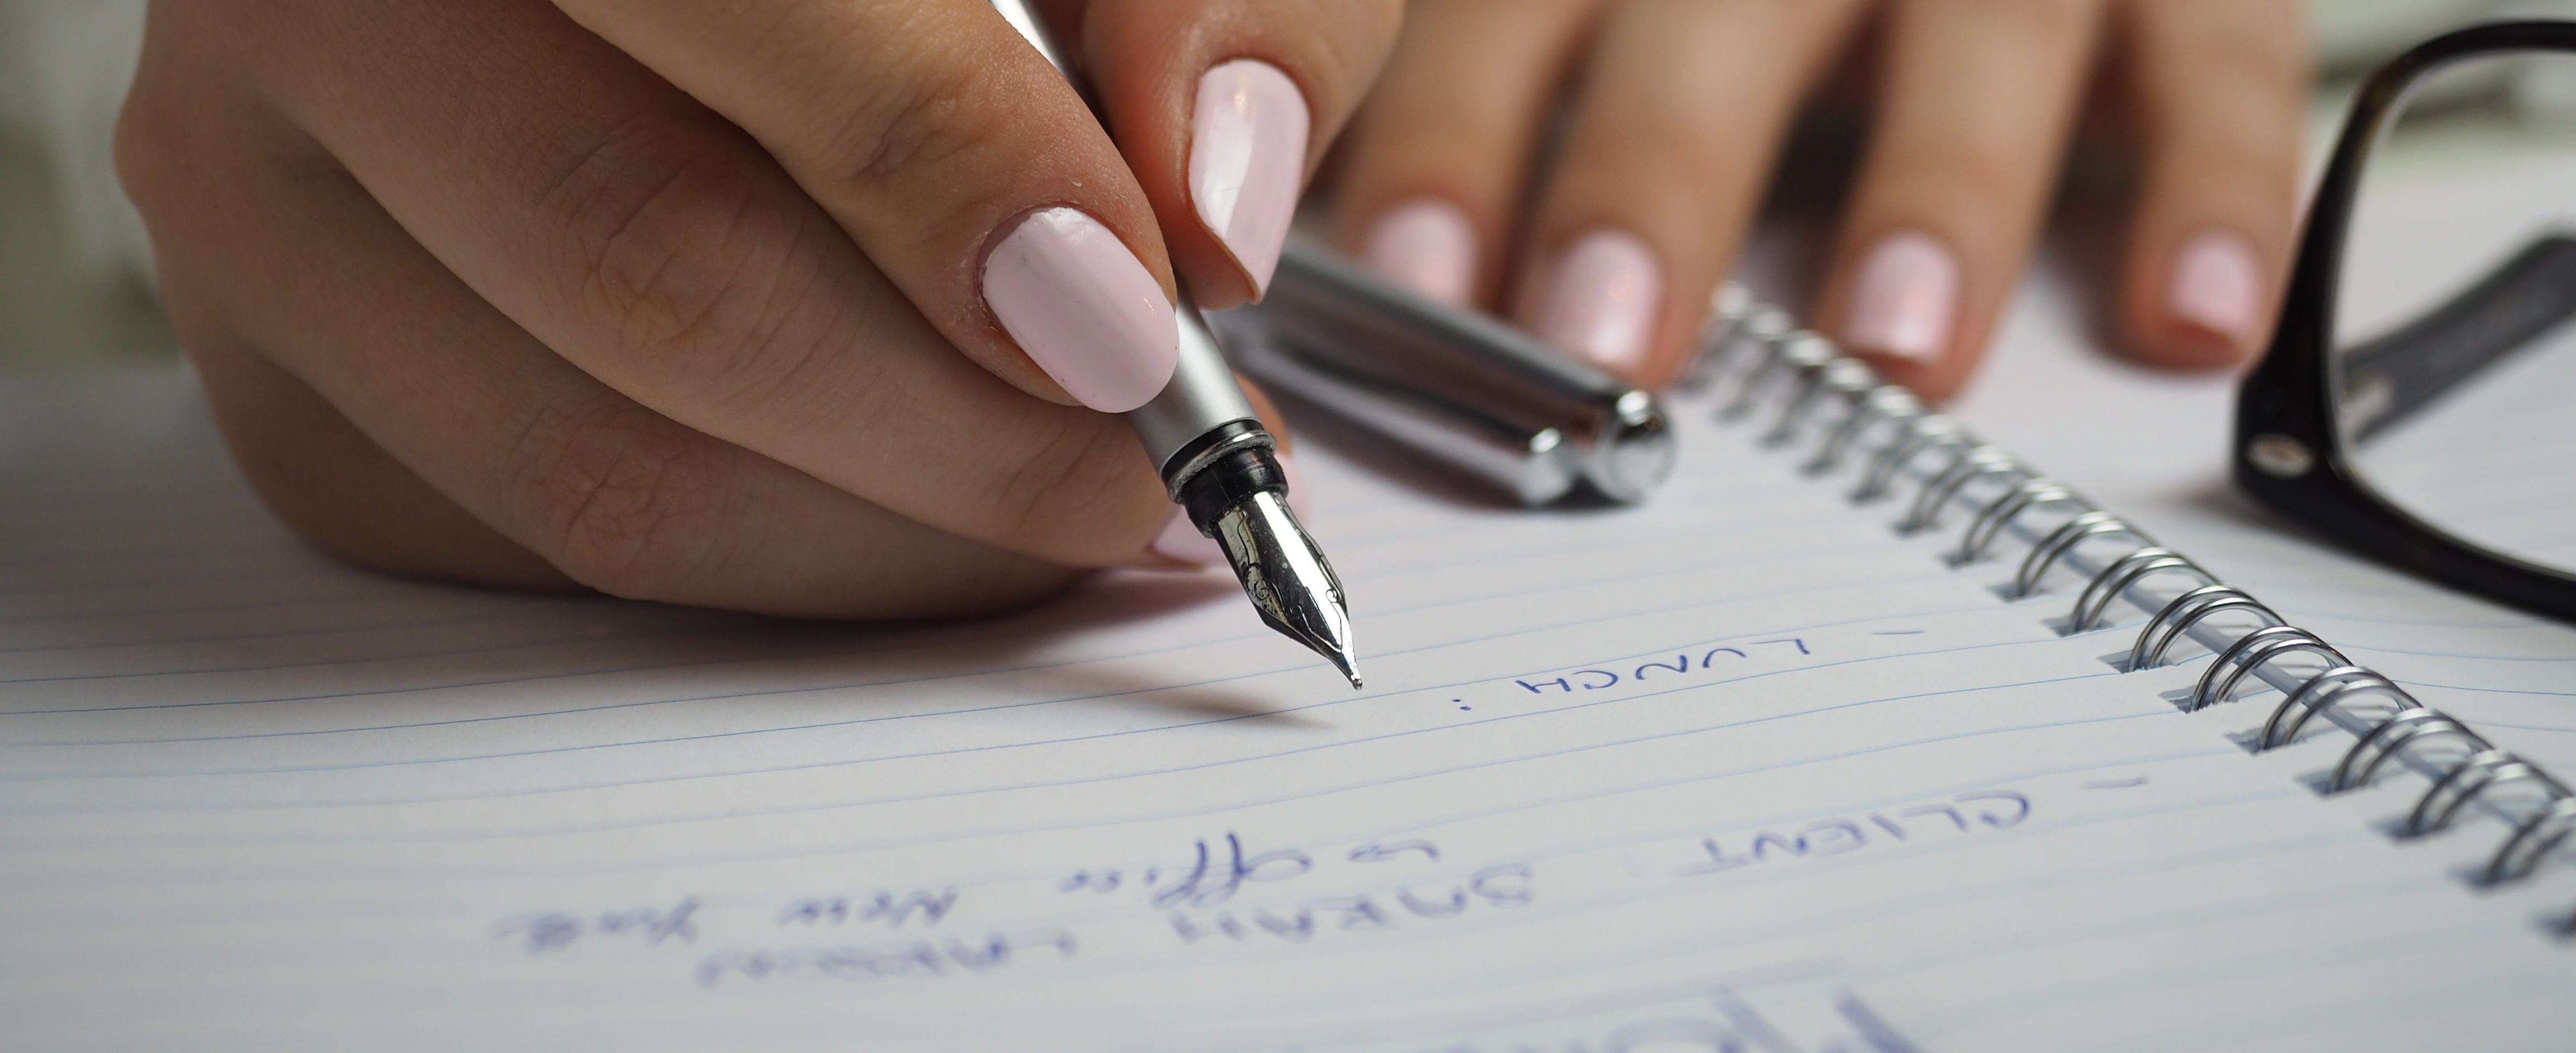 person-writing-in-notebook-835933-edited